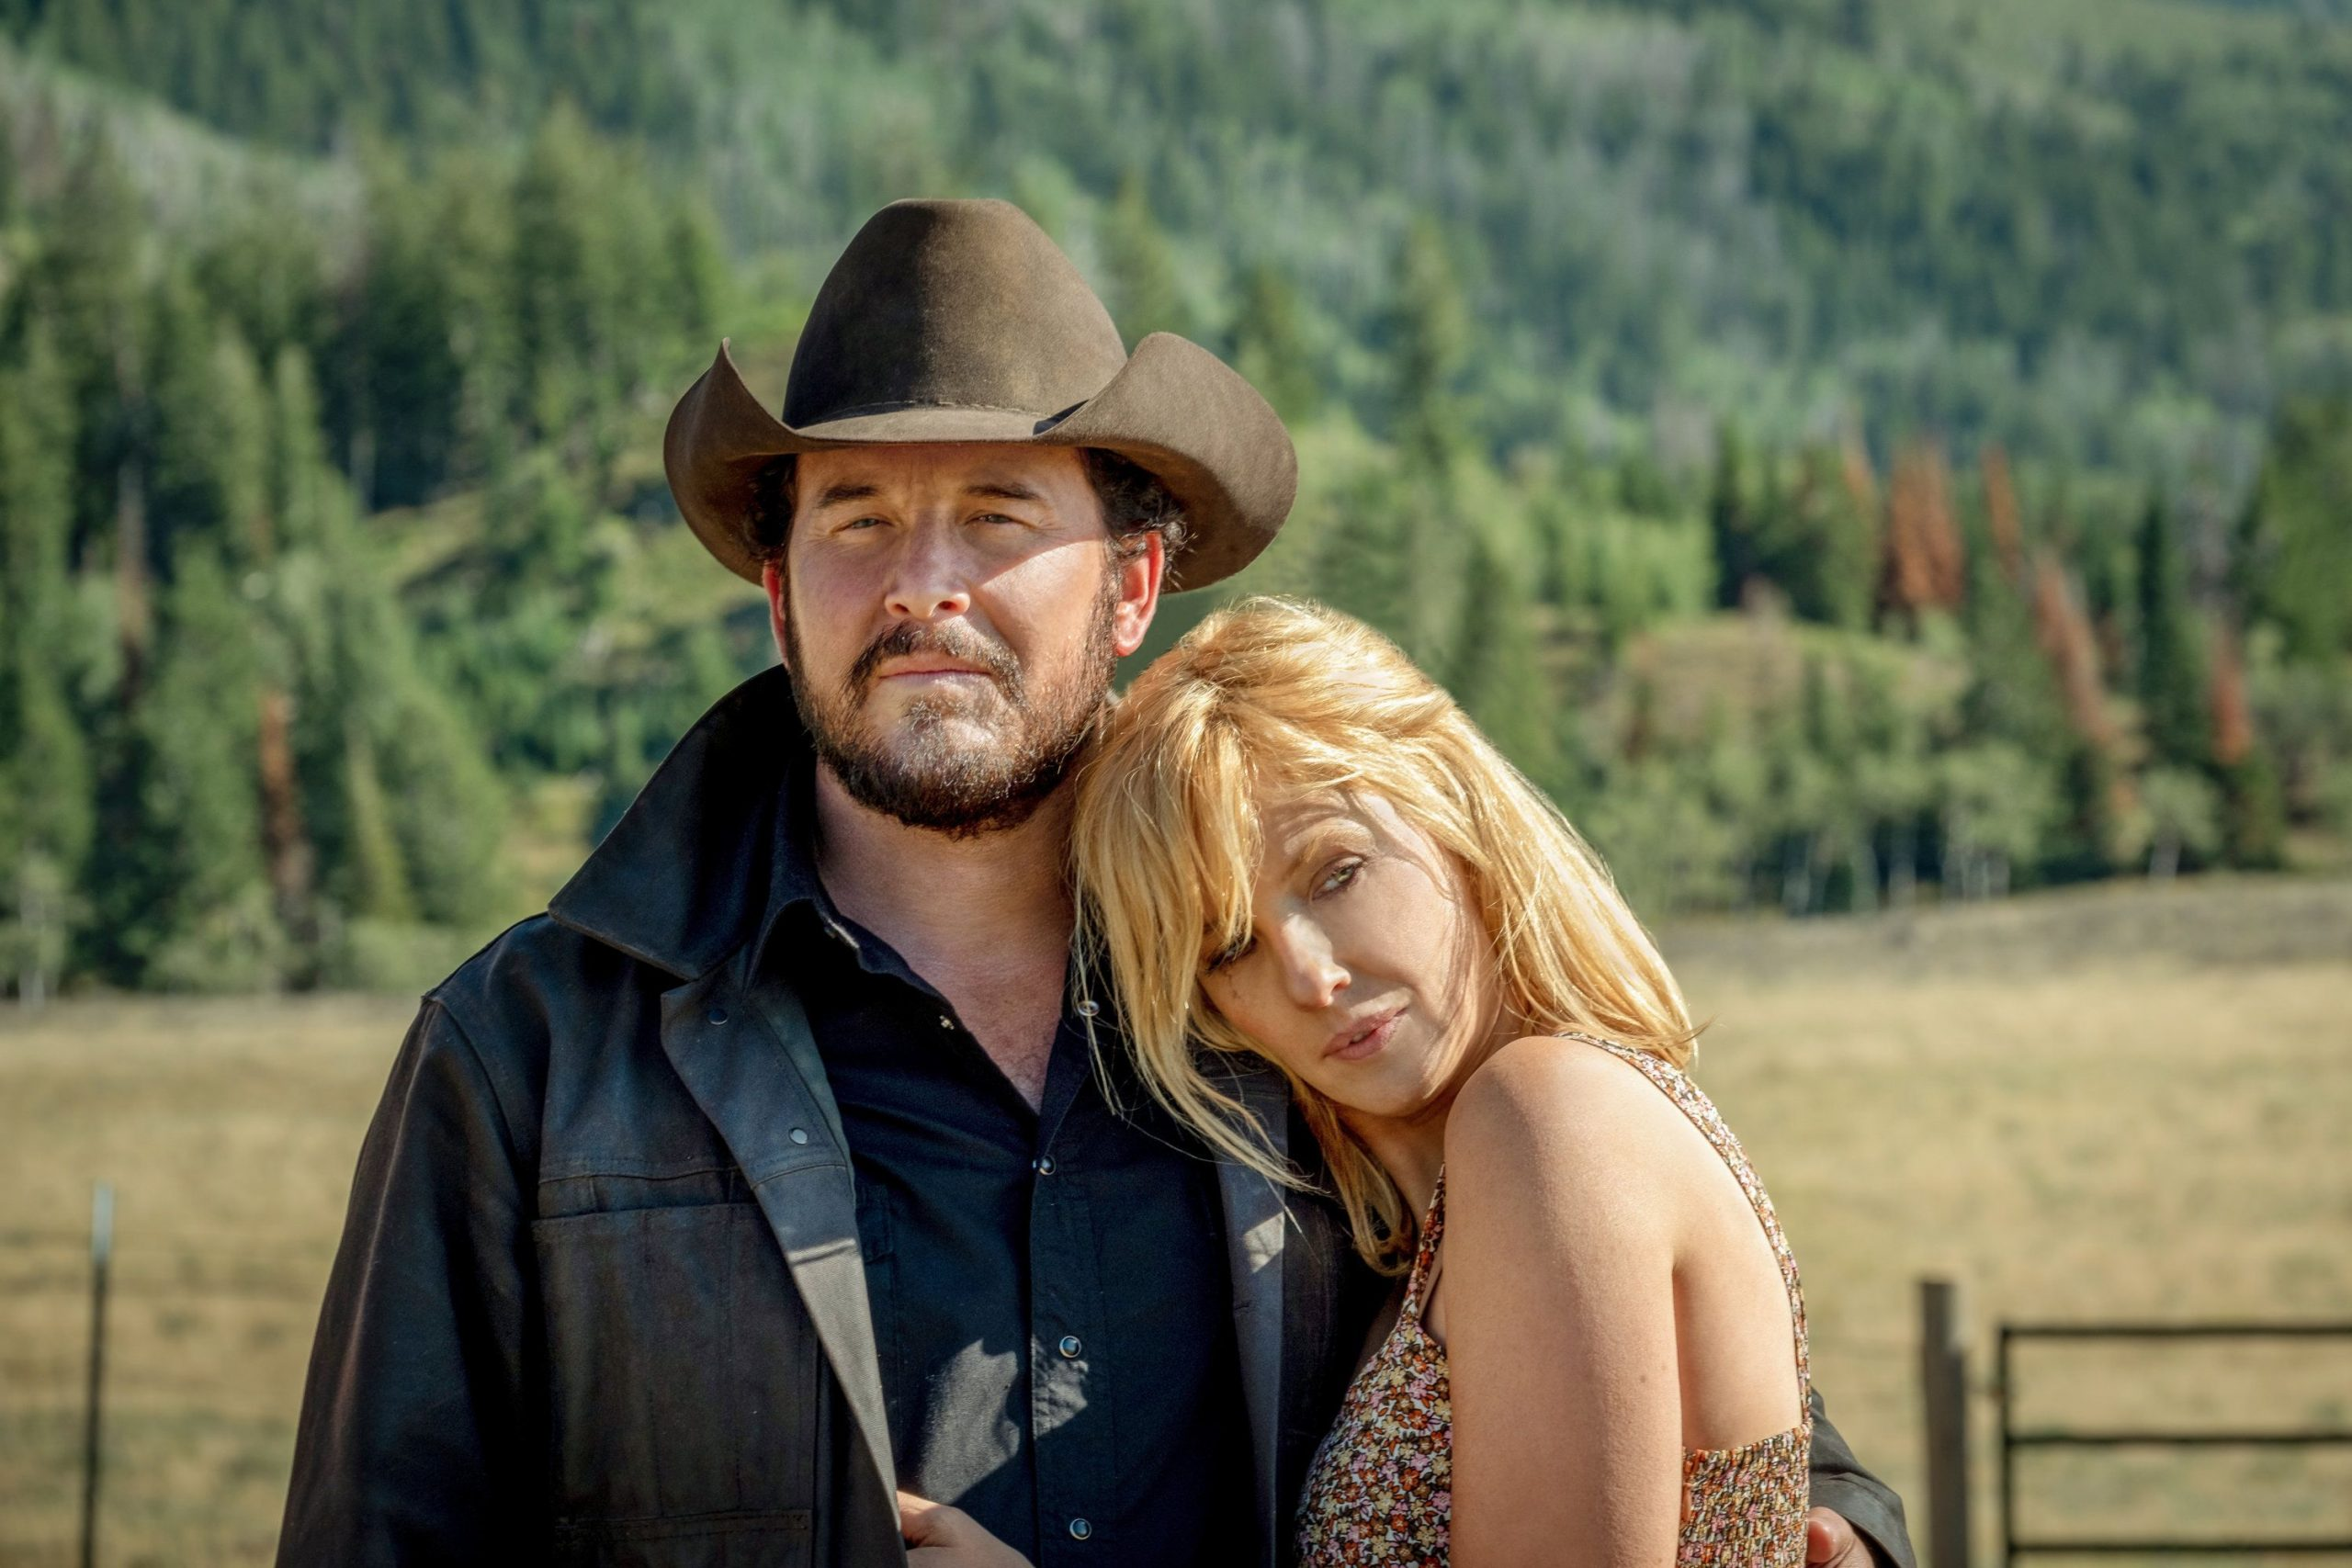 How Many Episodes will be There in Yellowstone Season 4?